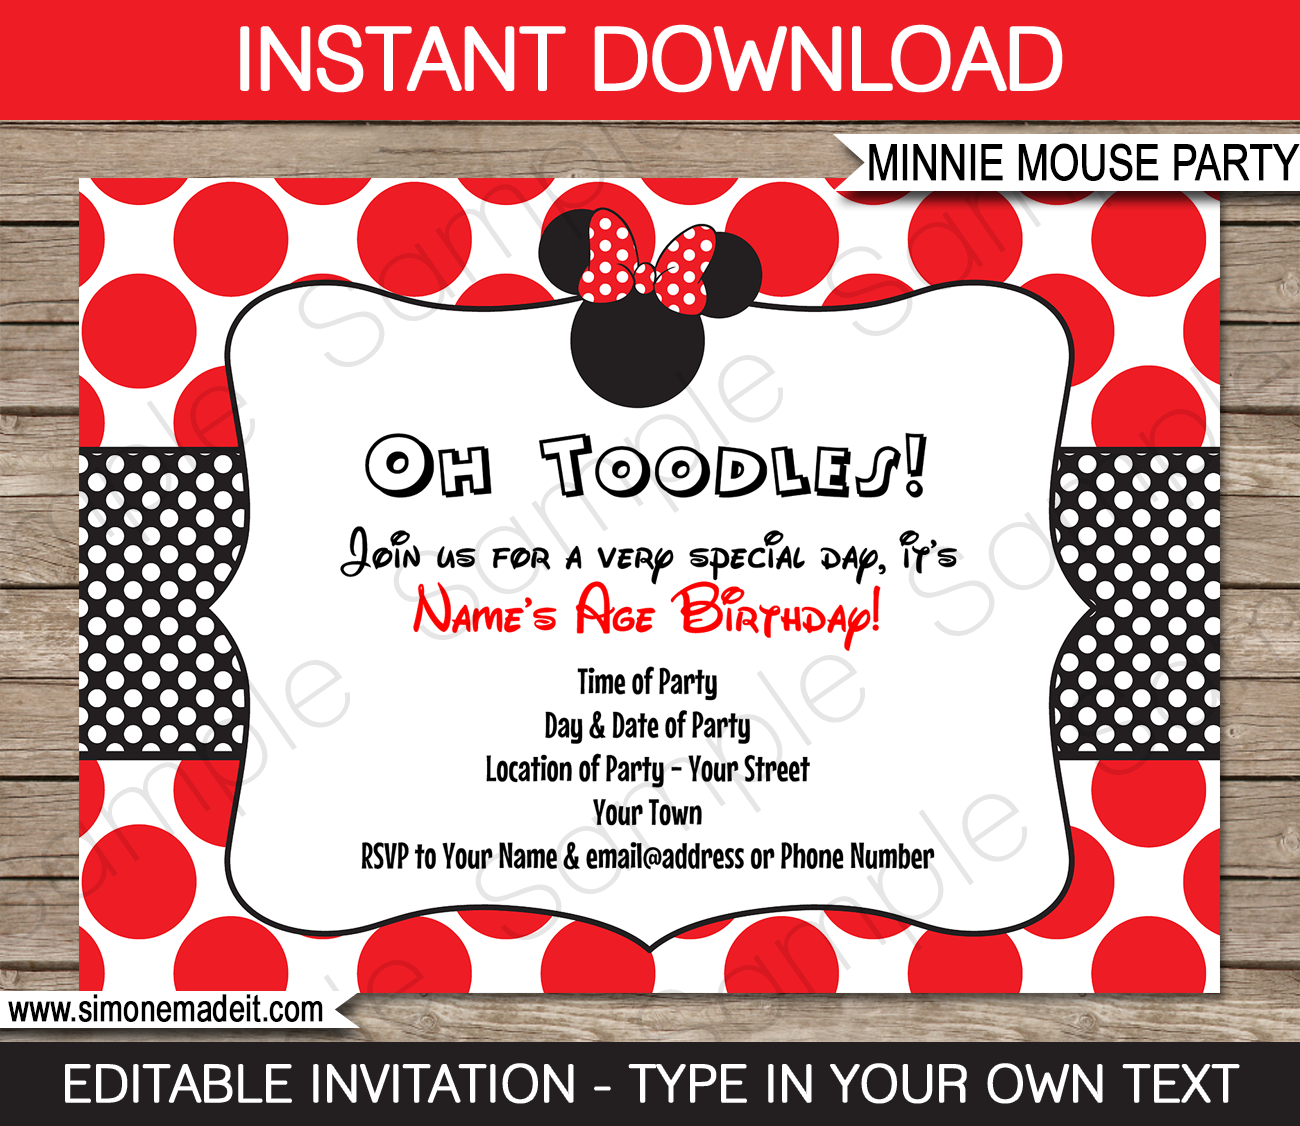 Minnie Mouse Birthday Party Invitations Template